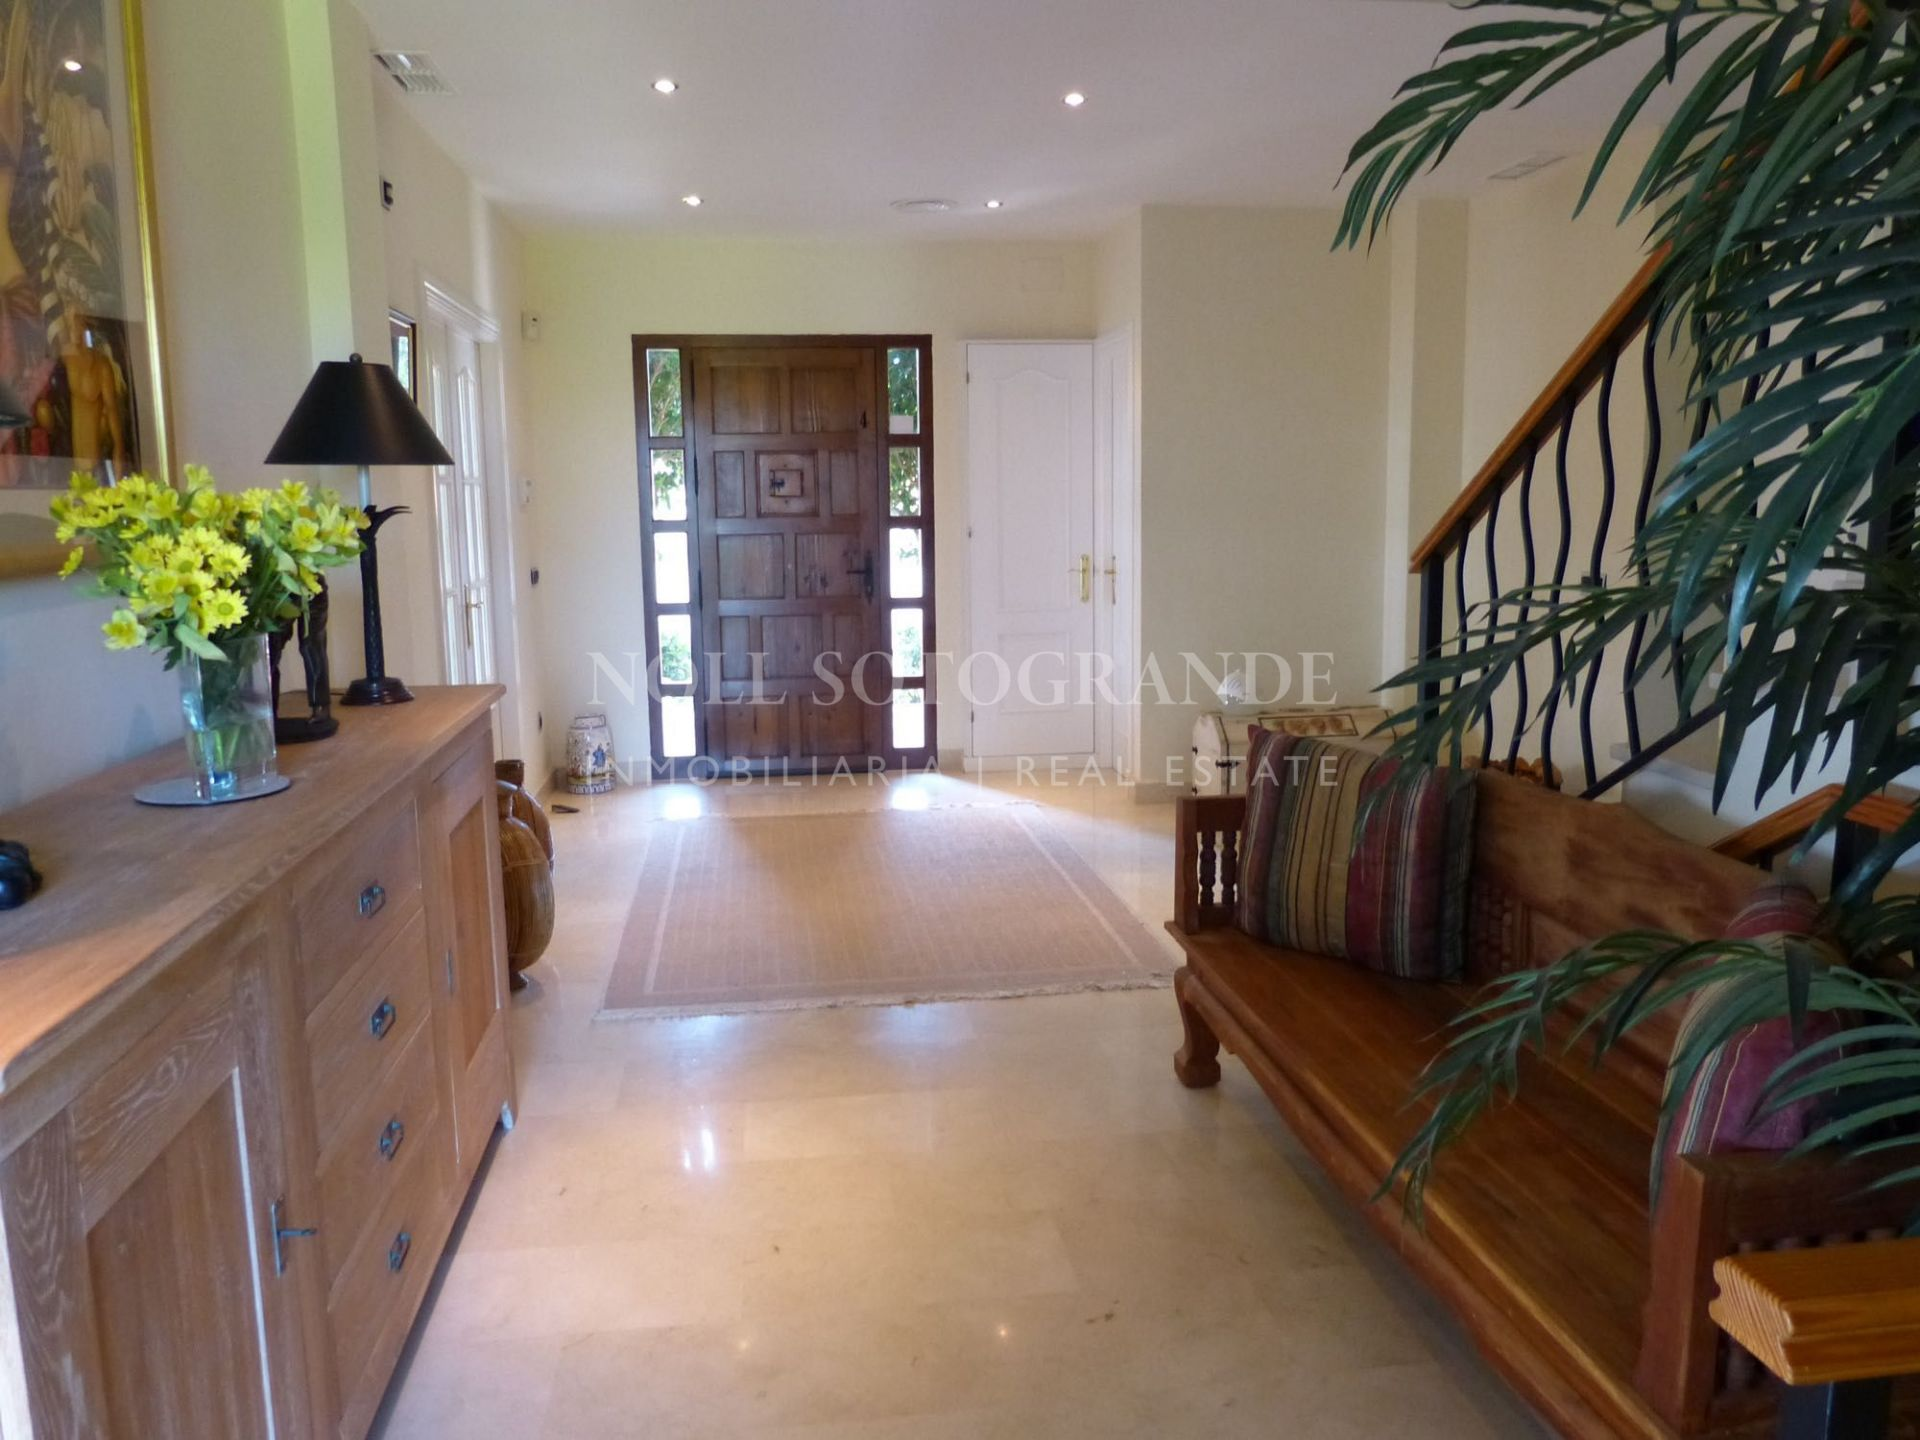 Very well looked after villa in Sotogrande Costa for sale